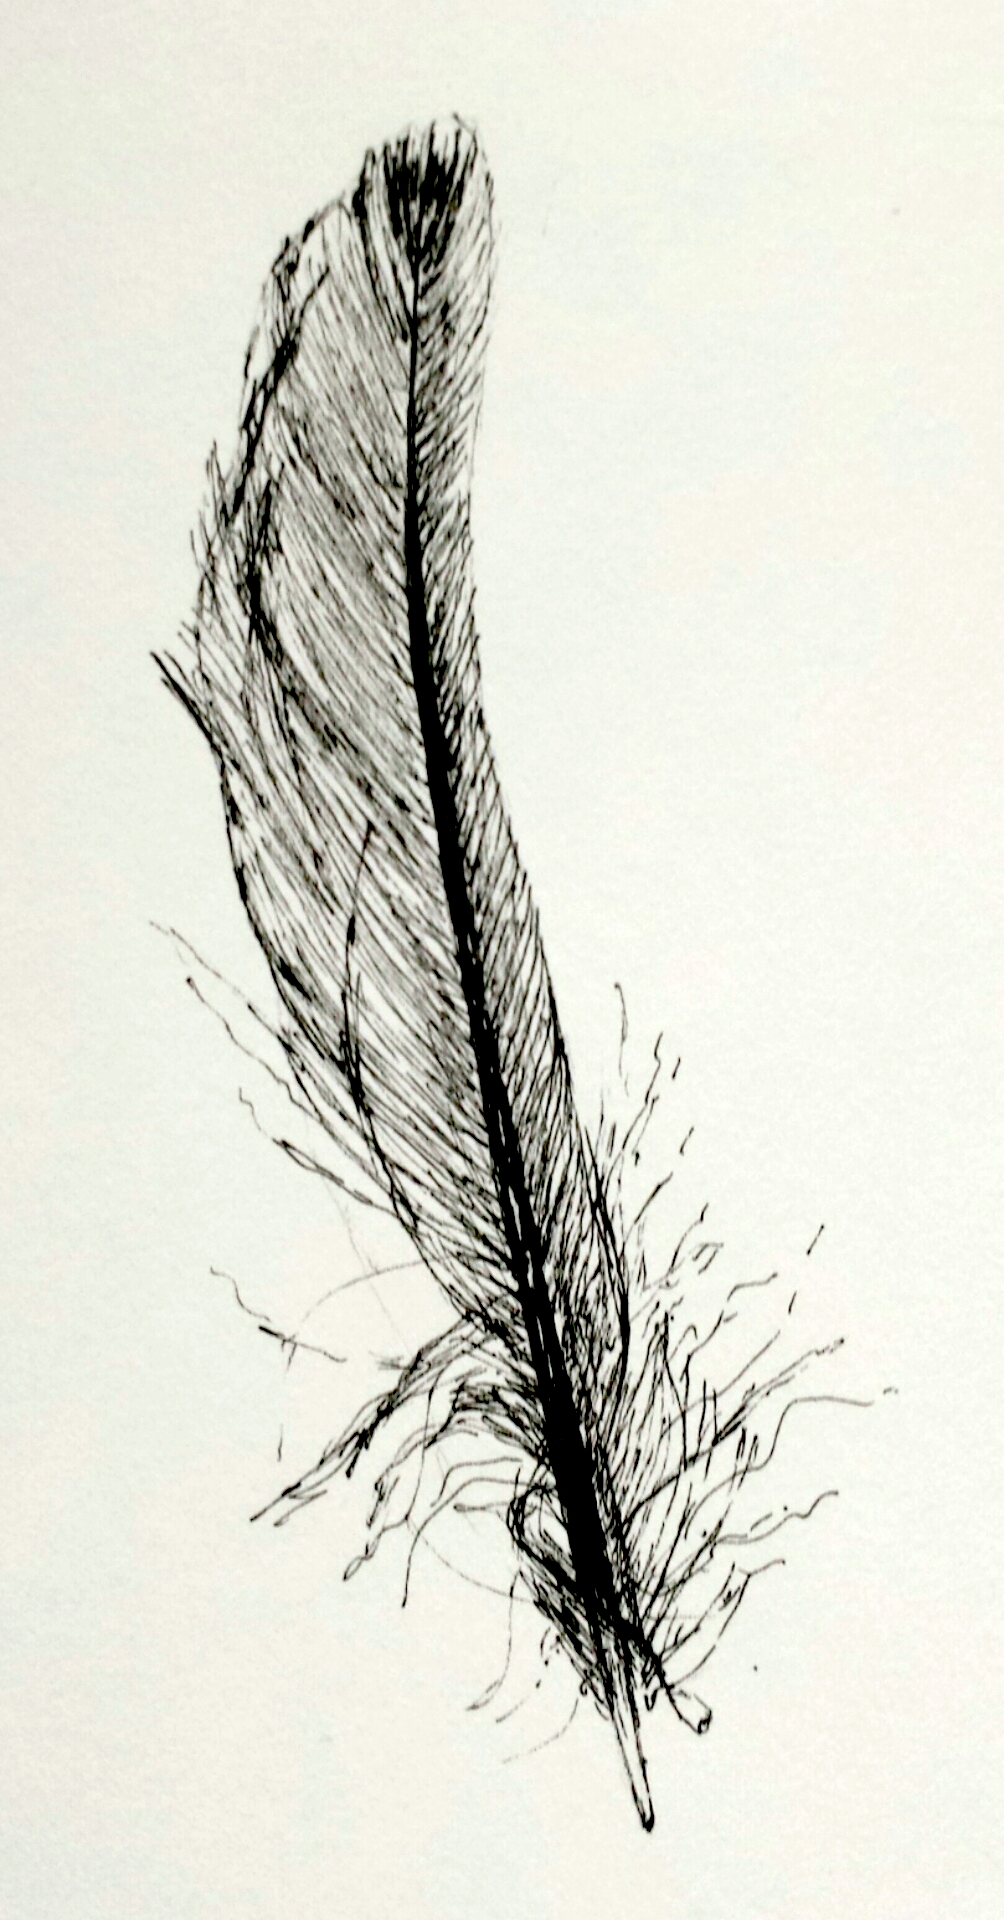 Feather, pen and ink, 2016